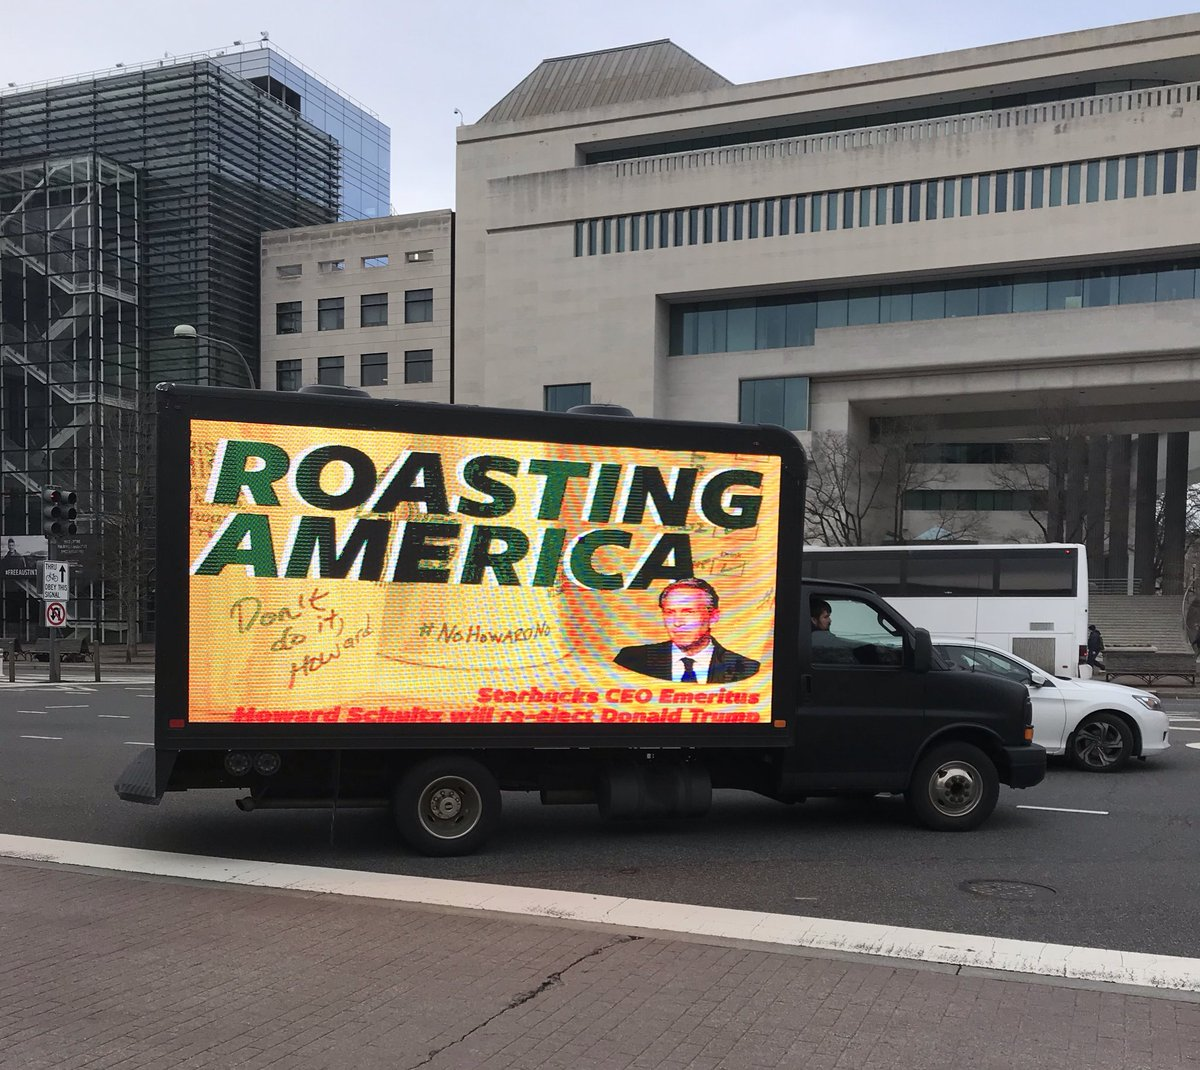 """Spotted by Capitol Hill: A truck with a """"ROASTING AMERICA,"""" anti-Howard Schultz digital billboard.   (Also blaring """"You're so vain"""" by Carly Simon.)"""